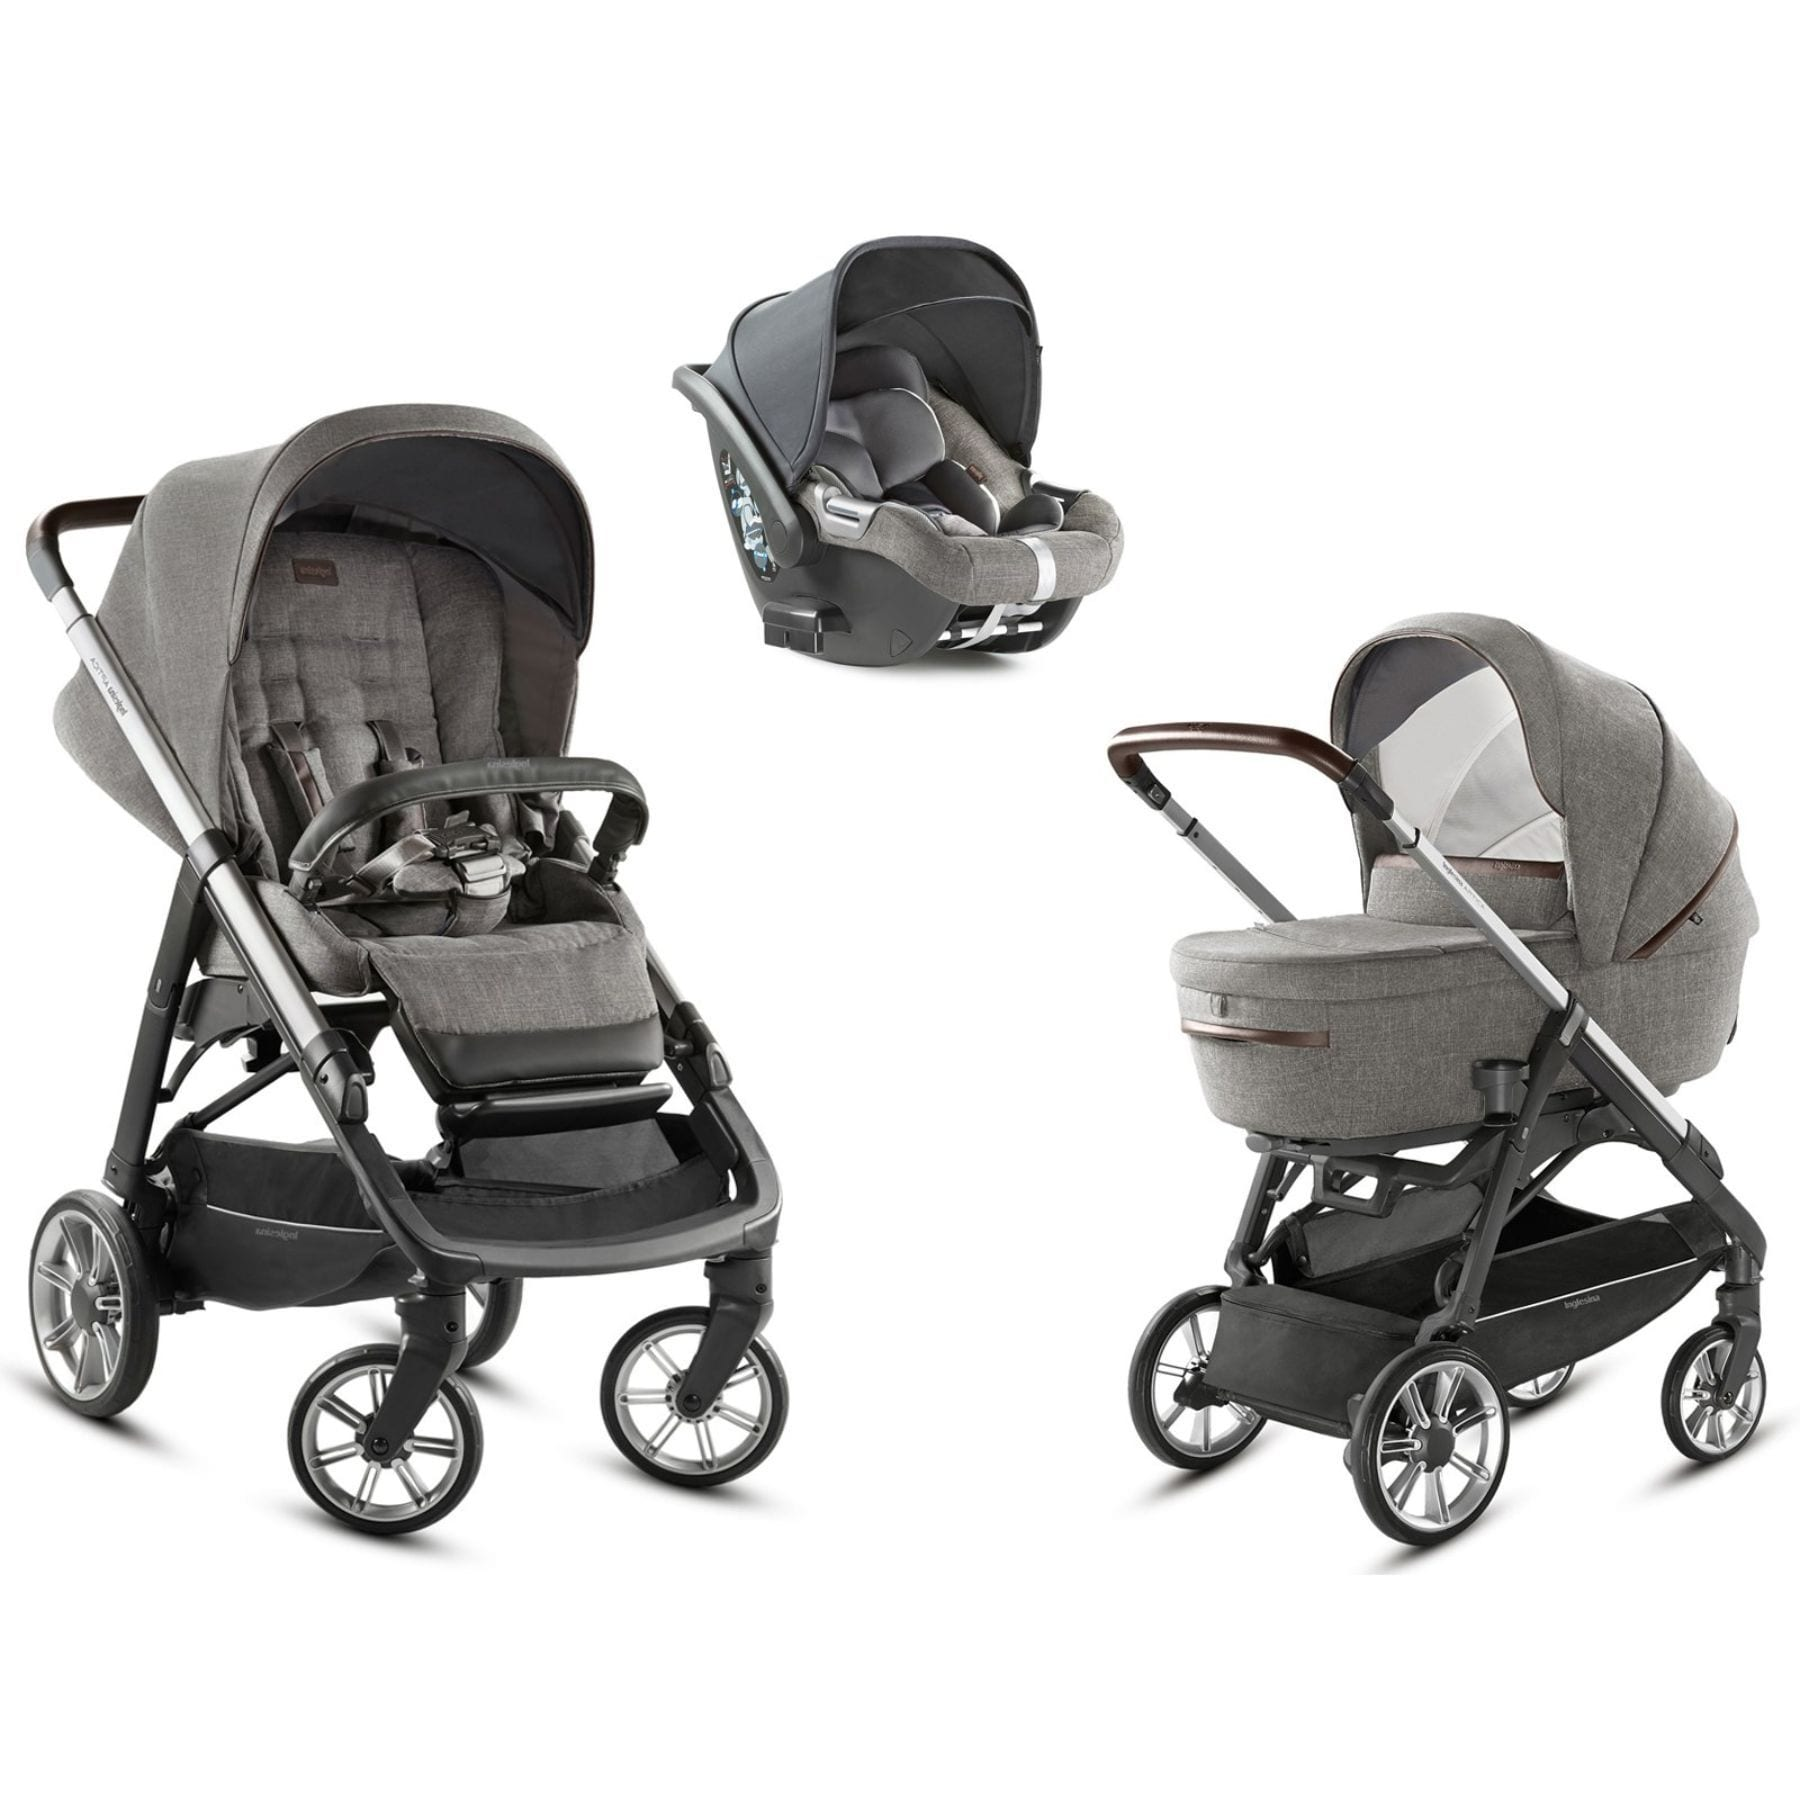 Inglesina Inglesina Aptica 5 Piece Travel System - Kensington Grey